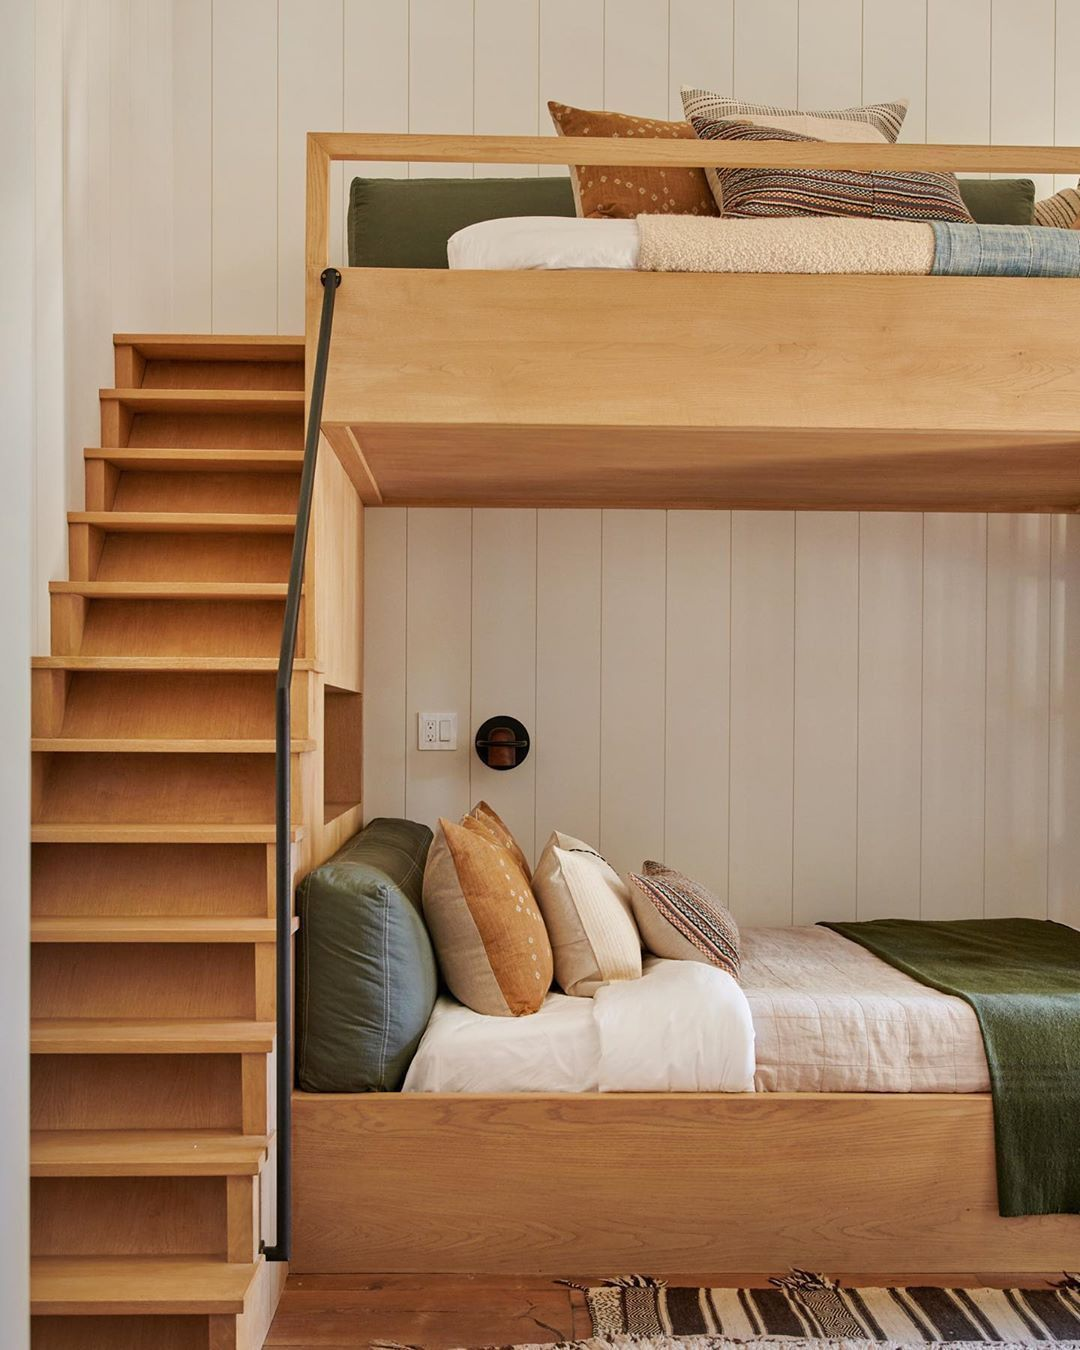 Age for Bunk Beds 2021 in 2020 Bunk bed designs, House